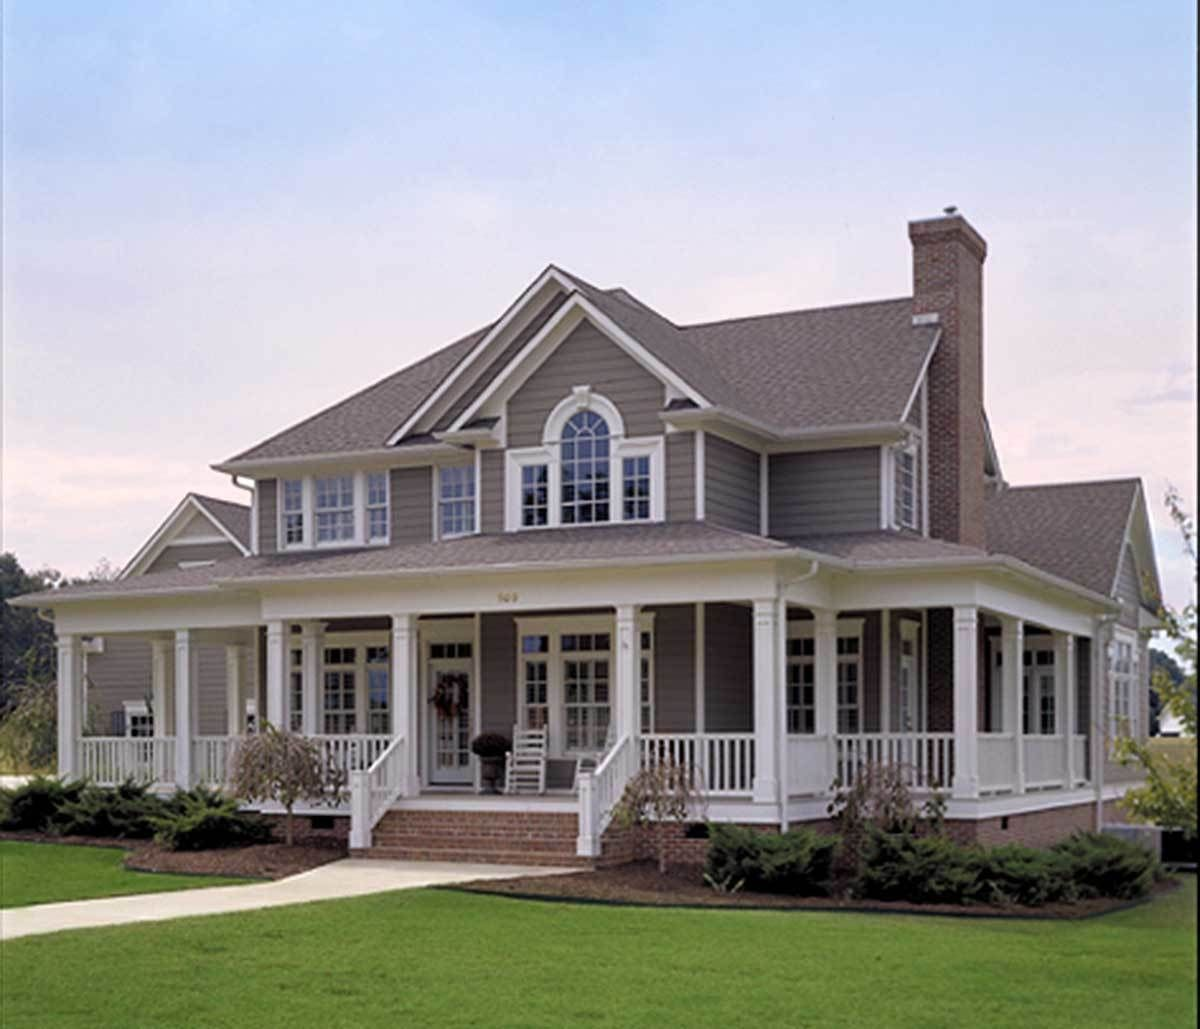 Country House Plans With Porch | Plan 16804wg Country Farmhouse With Wrap Around Porch